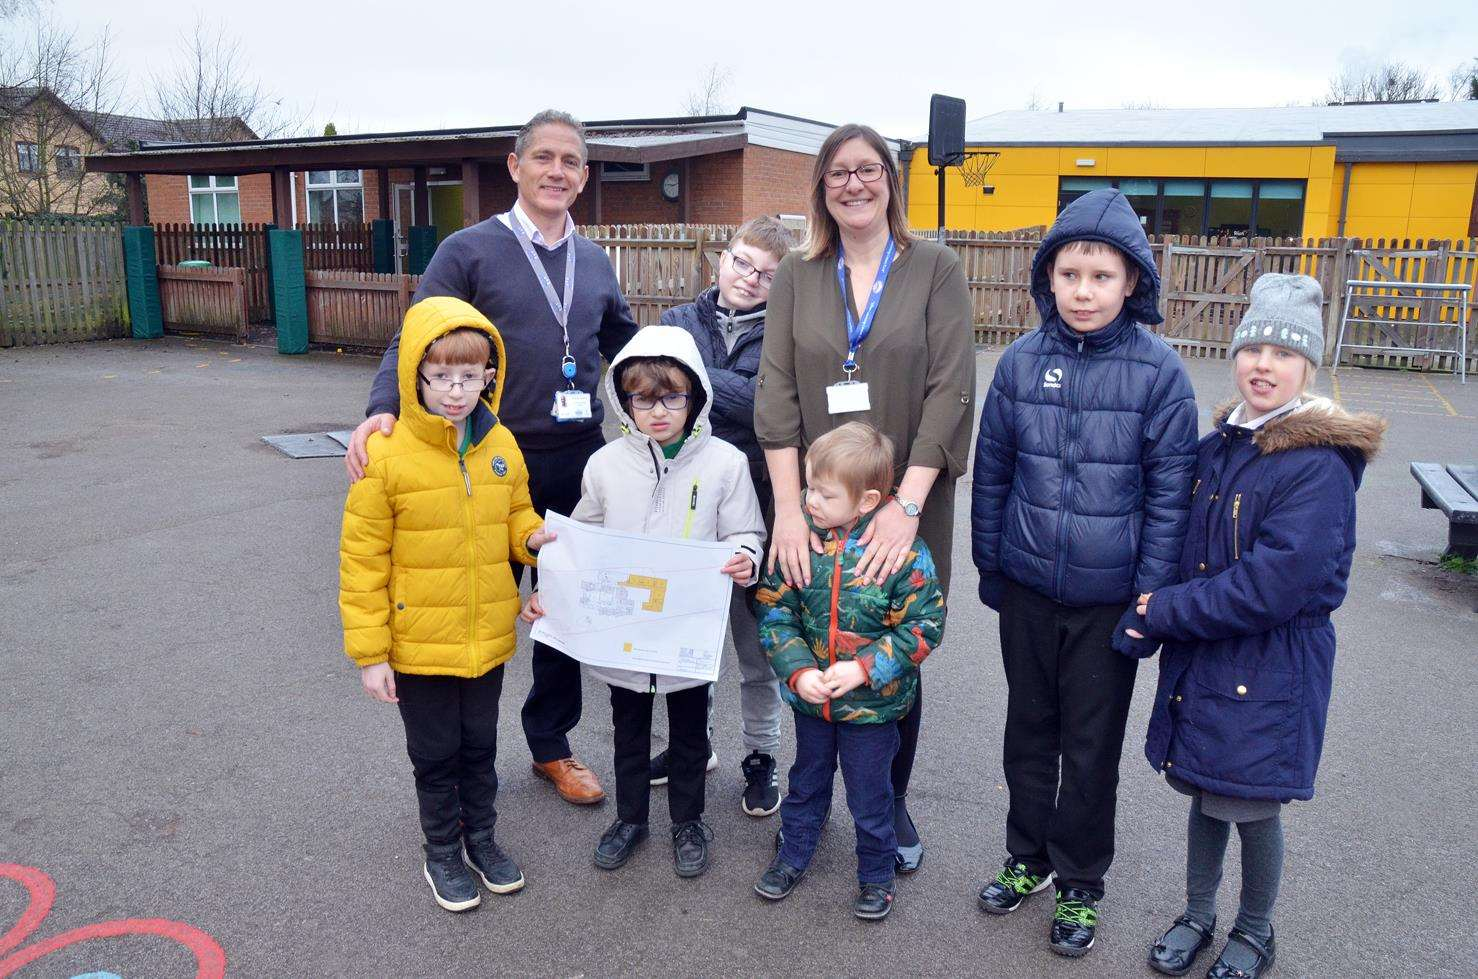 Executive head teacher Daran Bland, head teacher Claire Ball and pupils on the site of new build at Garth School. Photo (TIM WILSON): 230119-6